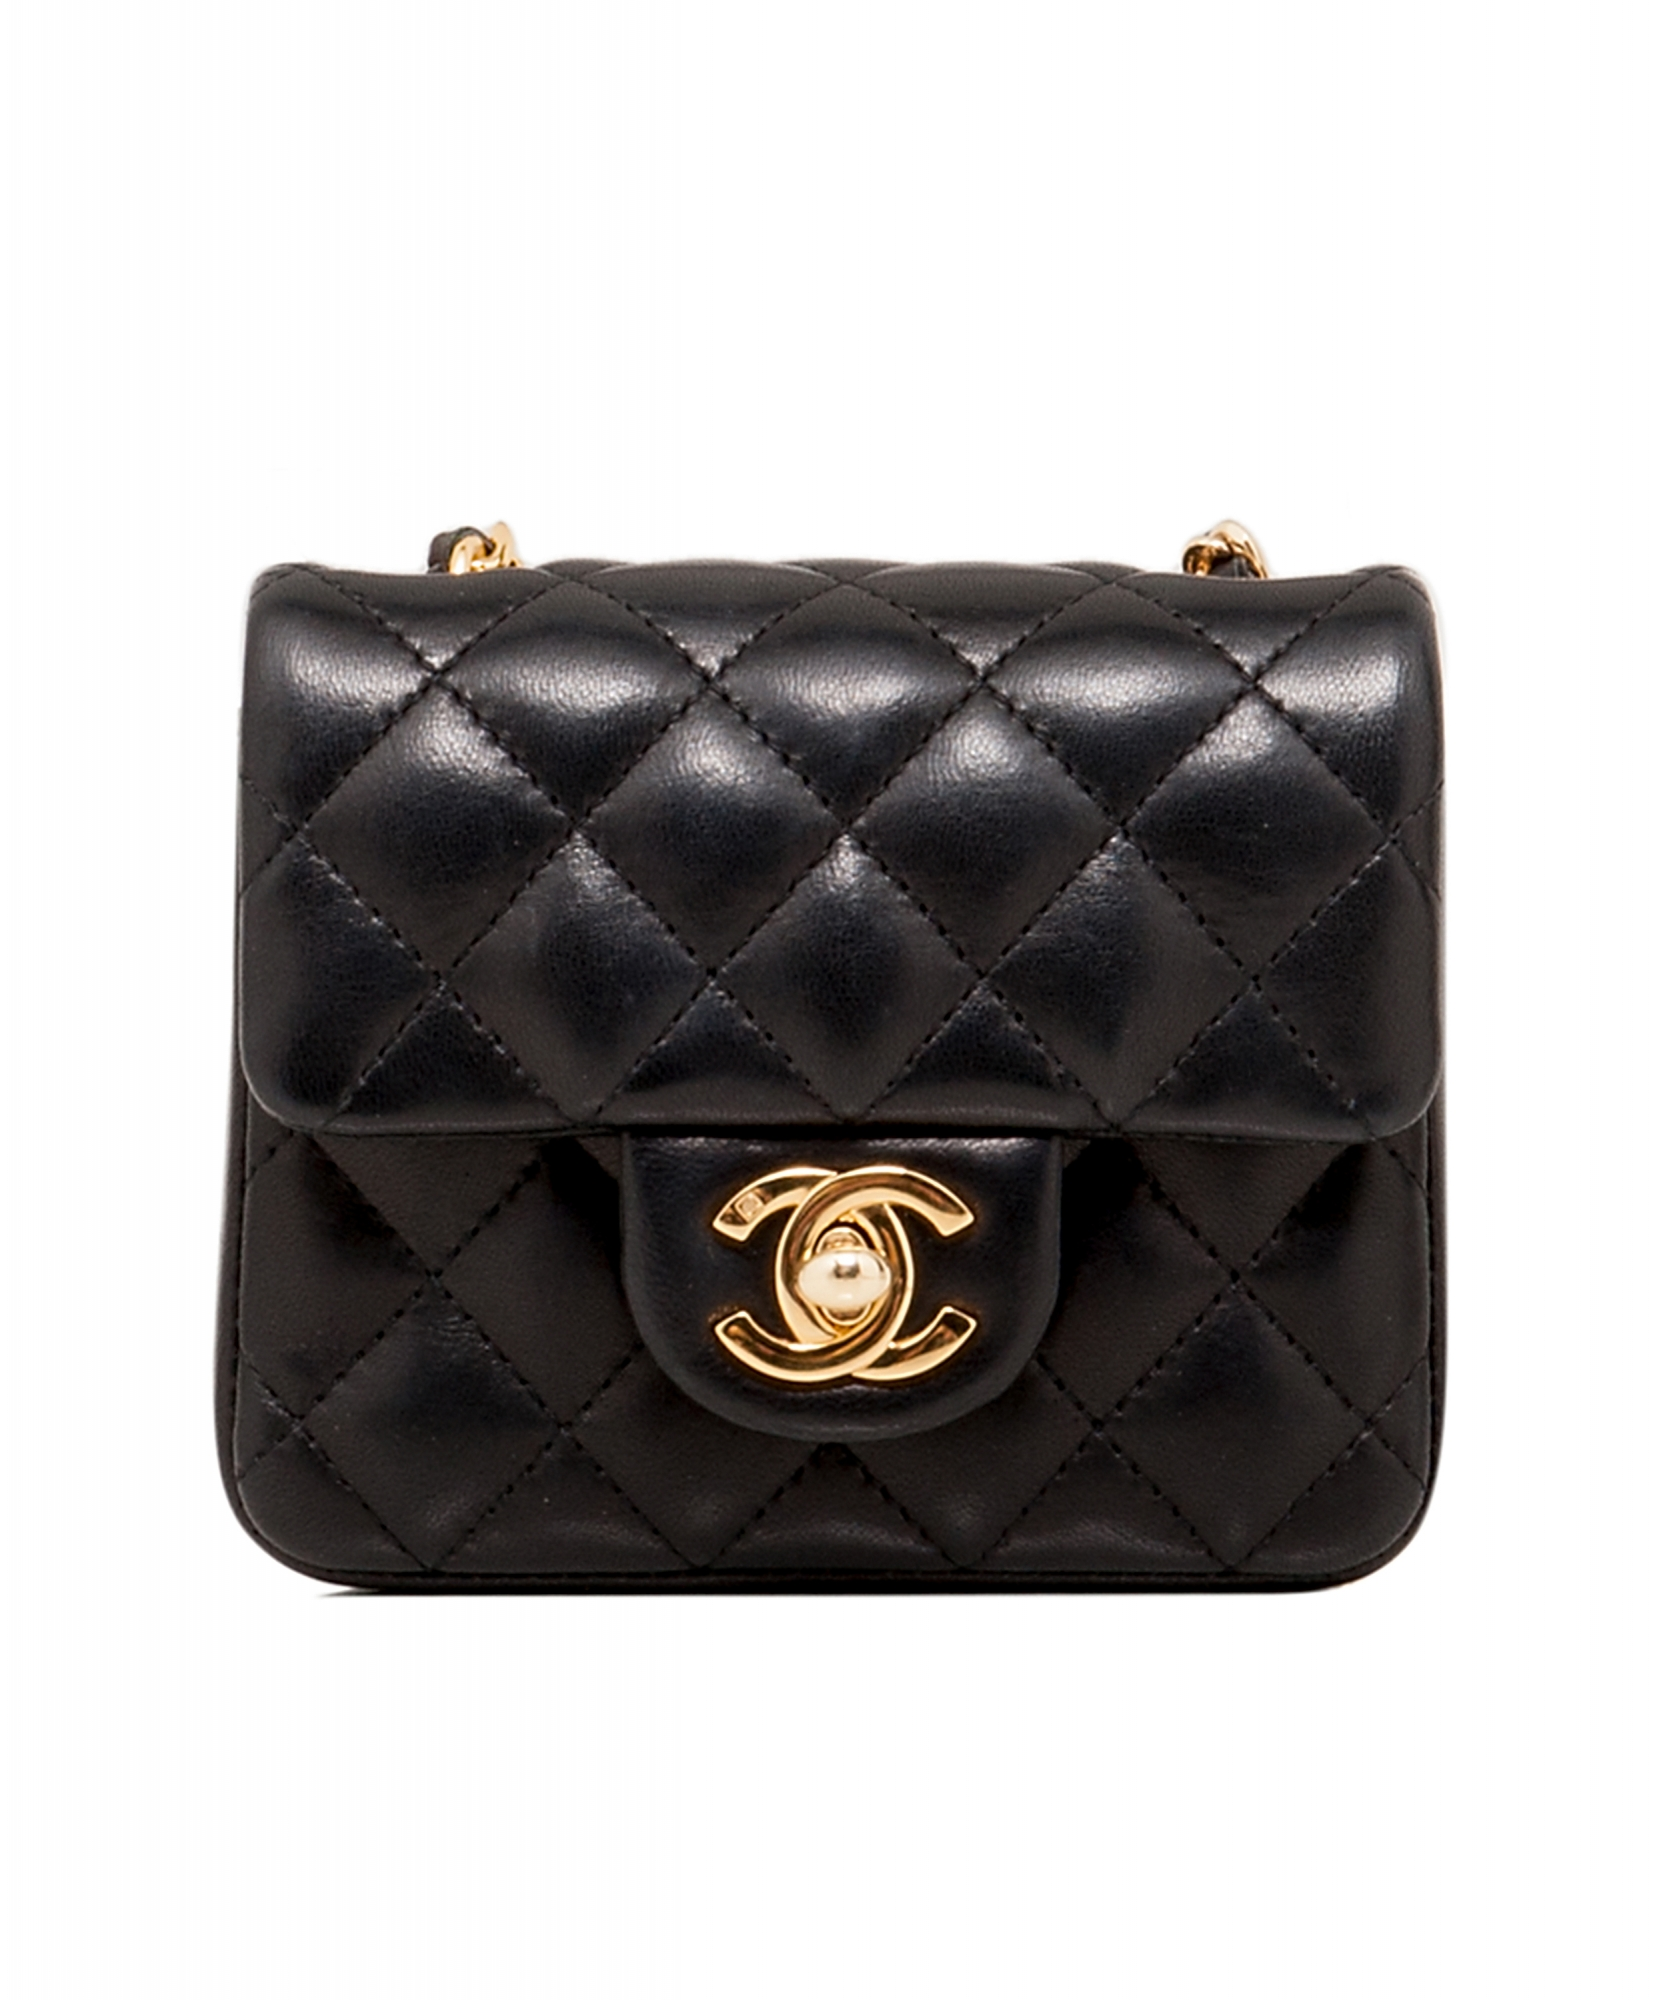 Chanel Black Micro Mini Classic Cross Body Bag  aed371530ef5